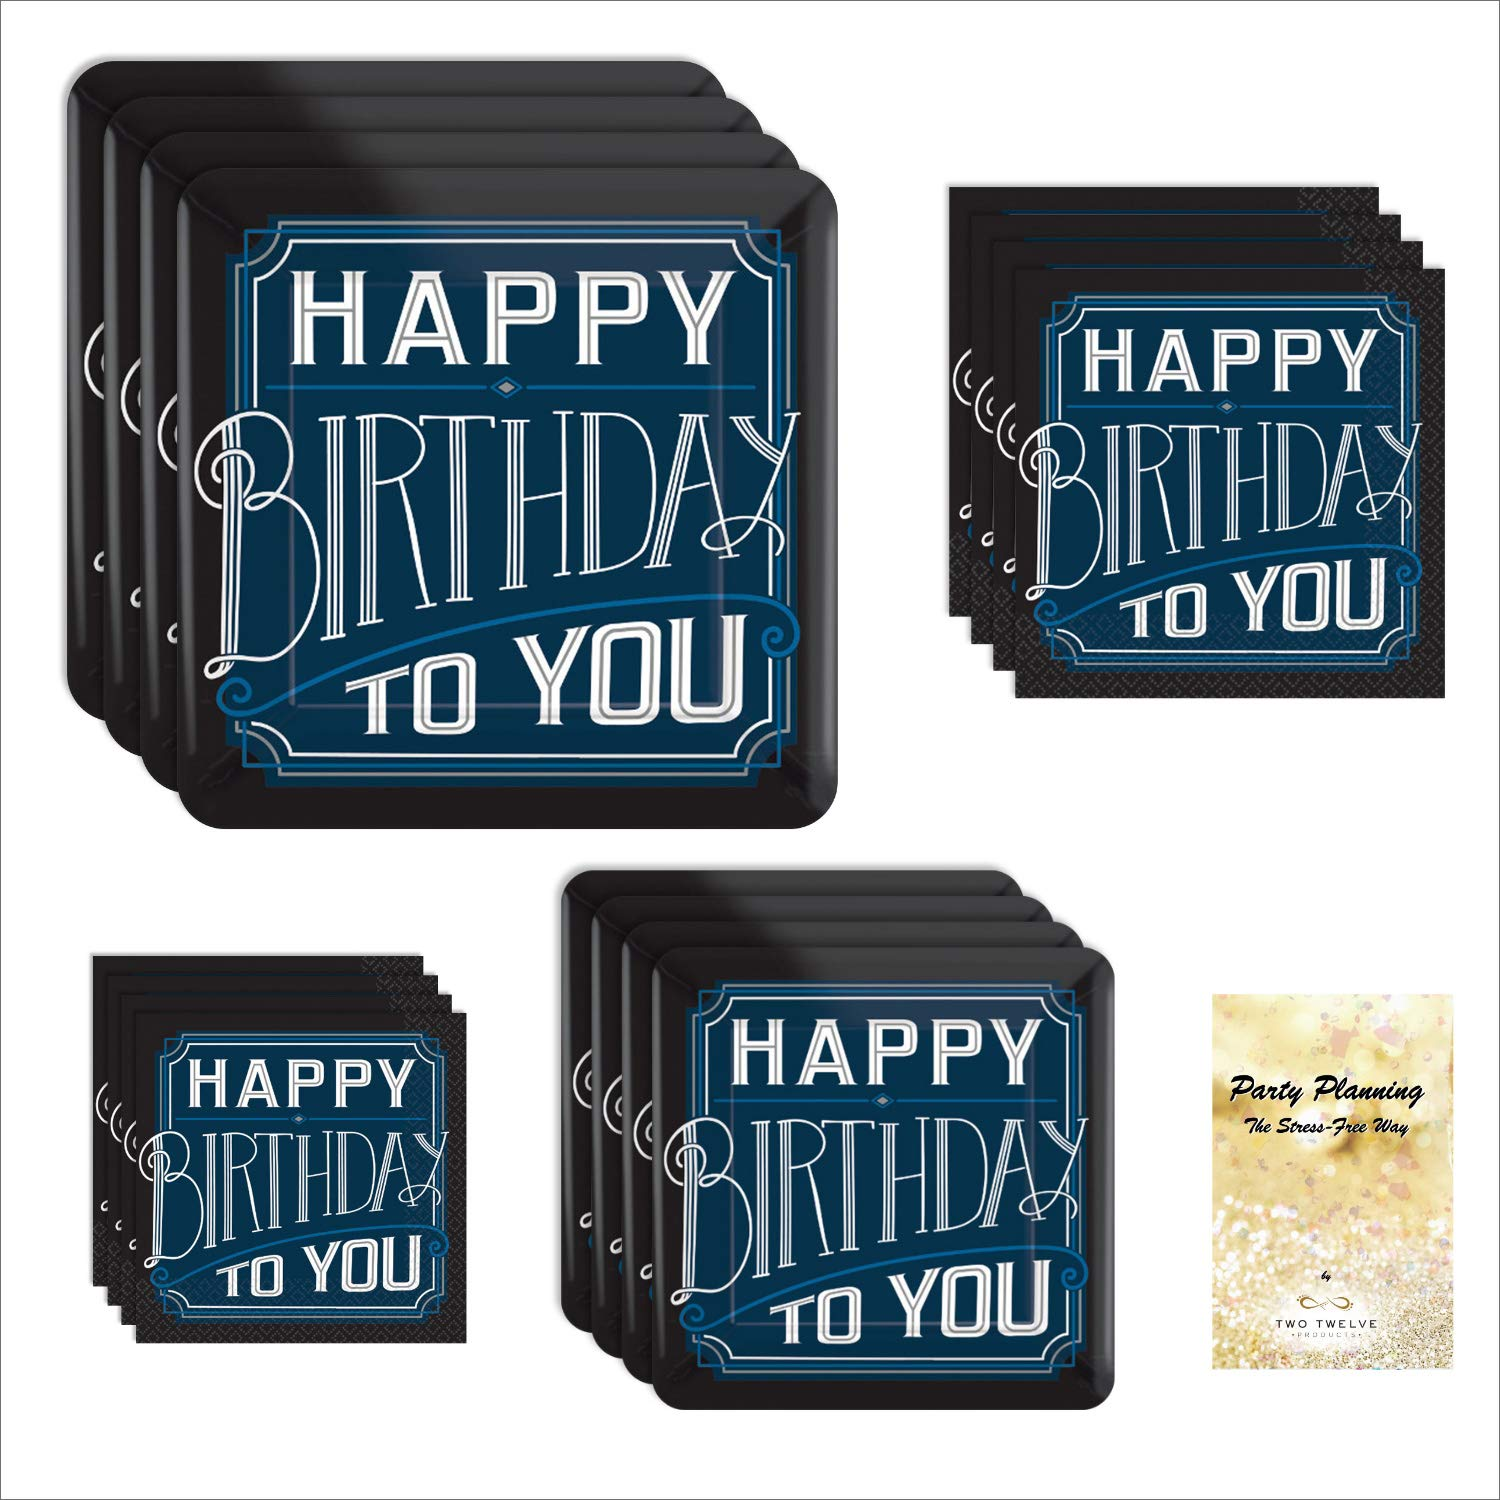 Man Birthday Party Supplies, Black and Blue Square Design, 16 Guests, 65 Pieces, Disposable Paper Dinnerware, Plate and Napkin Set by TwoTwelve Products (Image #1)